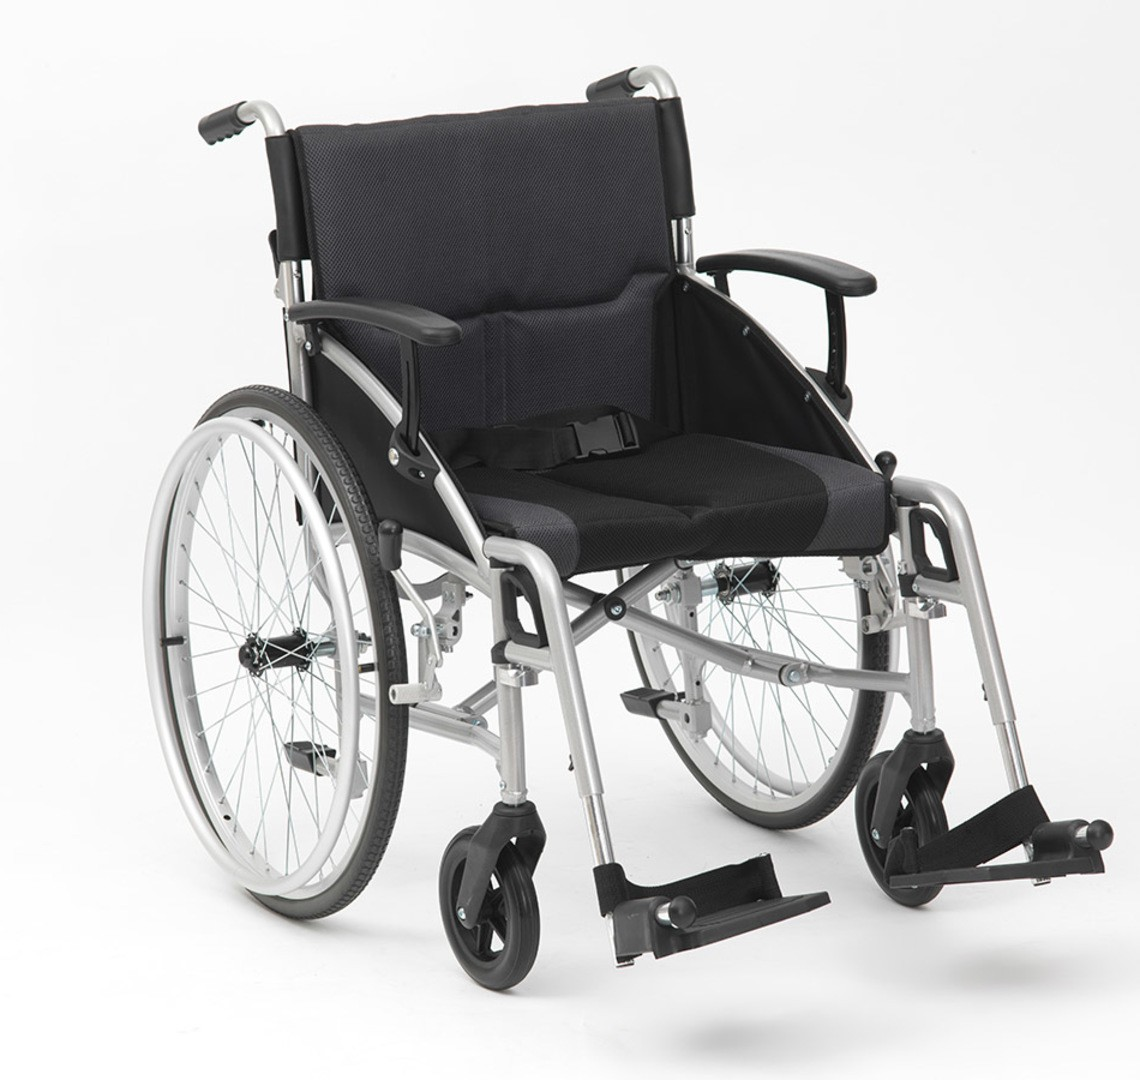 wheel chair prices distressed black metal dining chairs drive phantom self propelled wheelchair at low uk